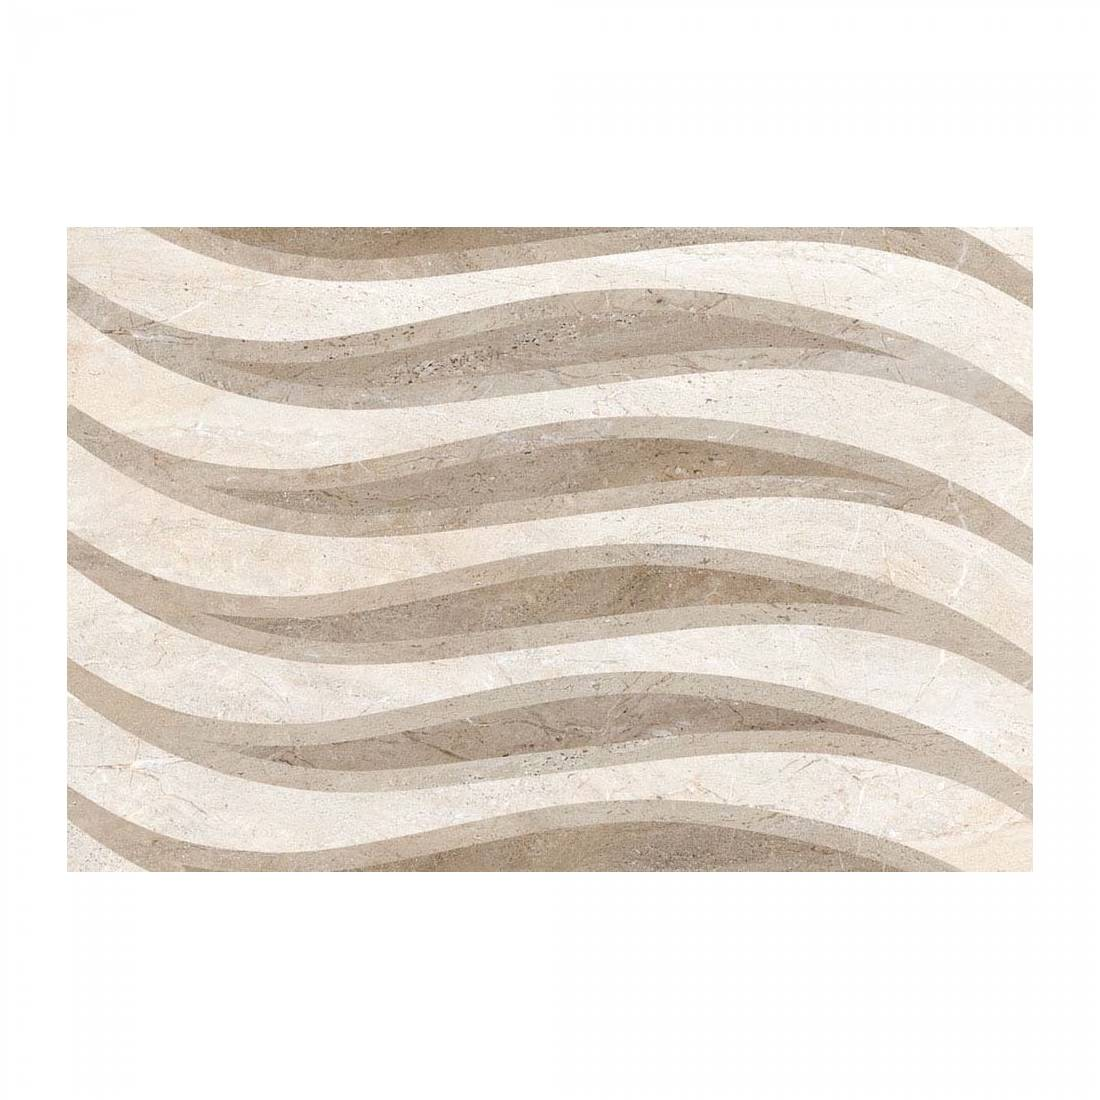 Montana Decor 30x45 Beige Matt 1